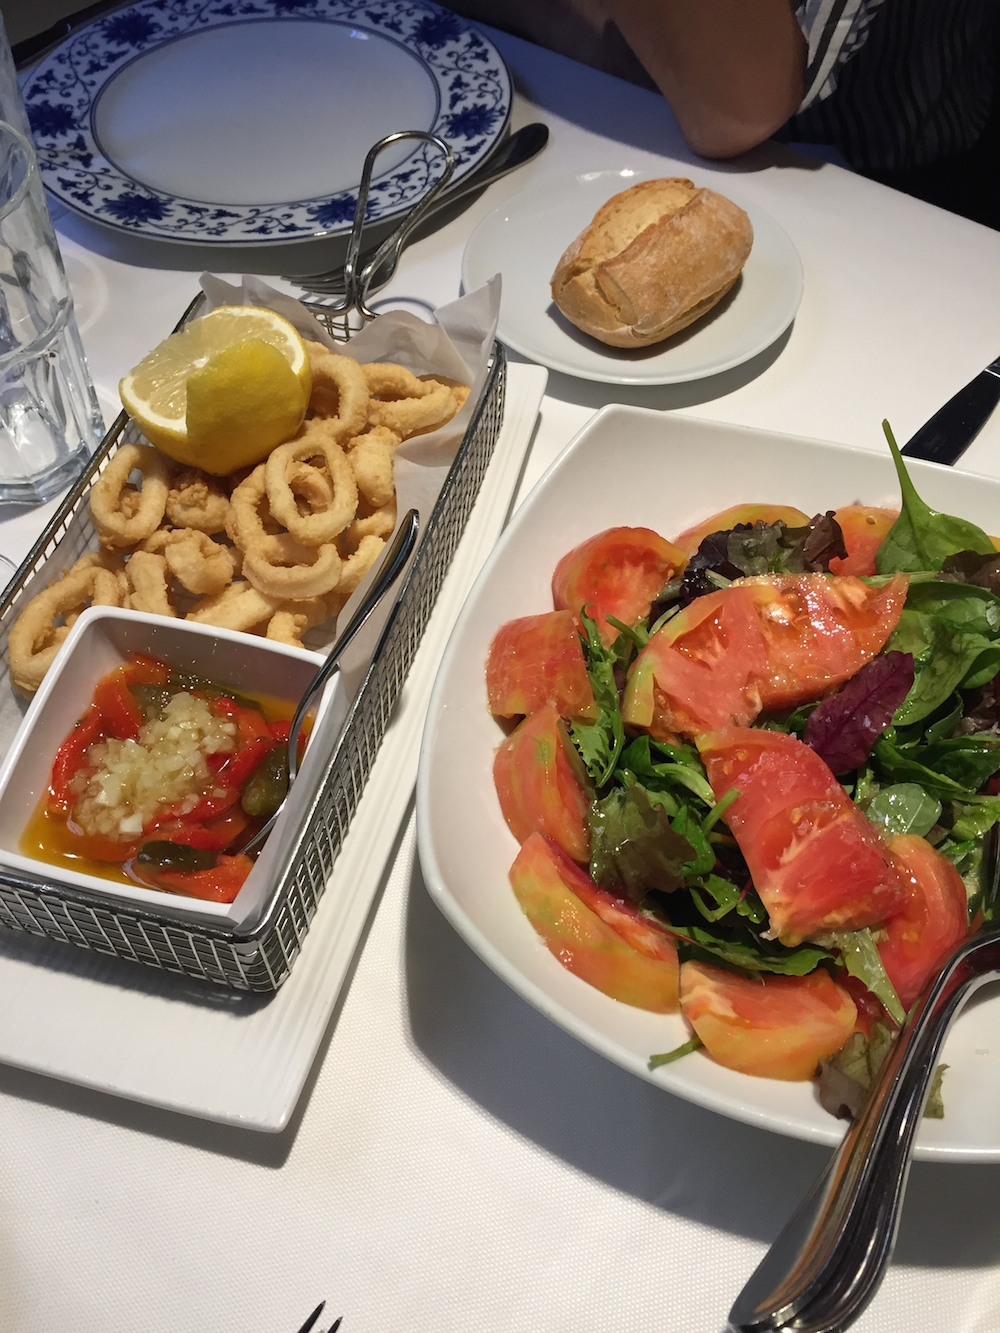 Fried calamari & tomato salad